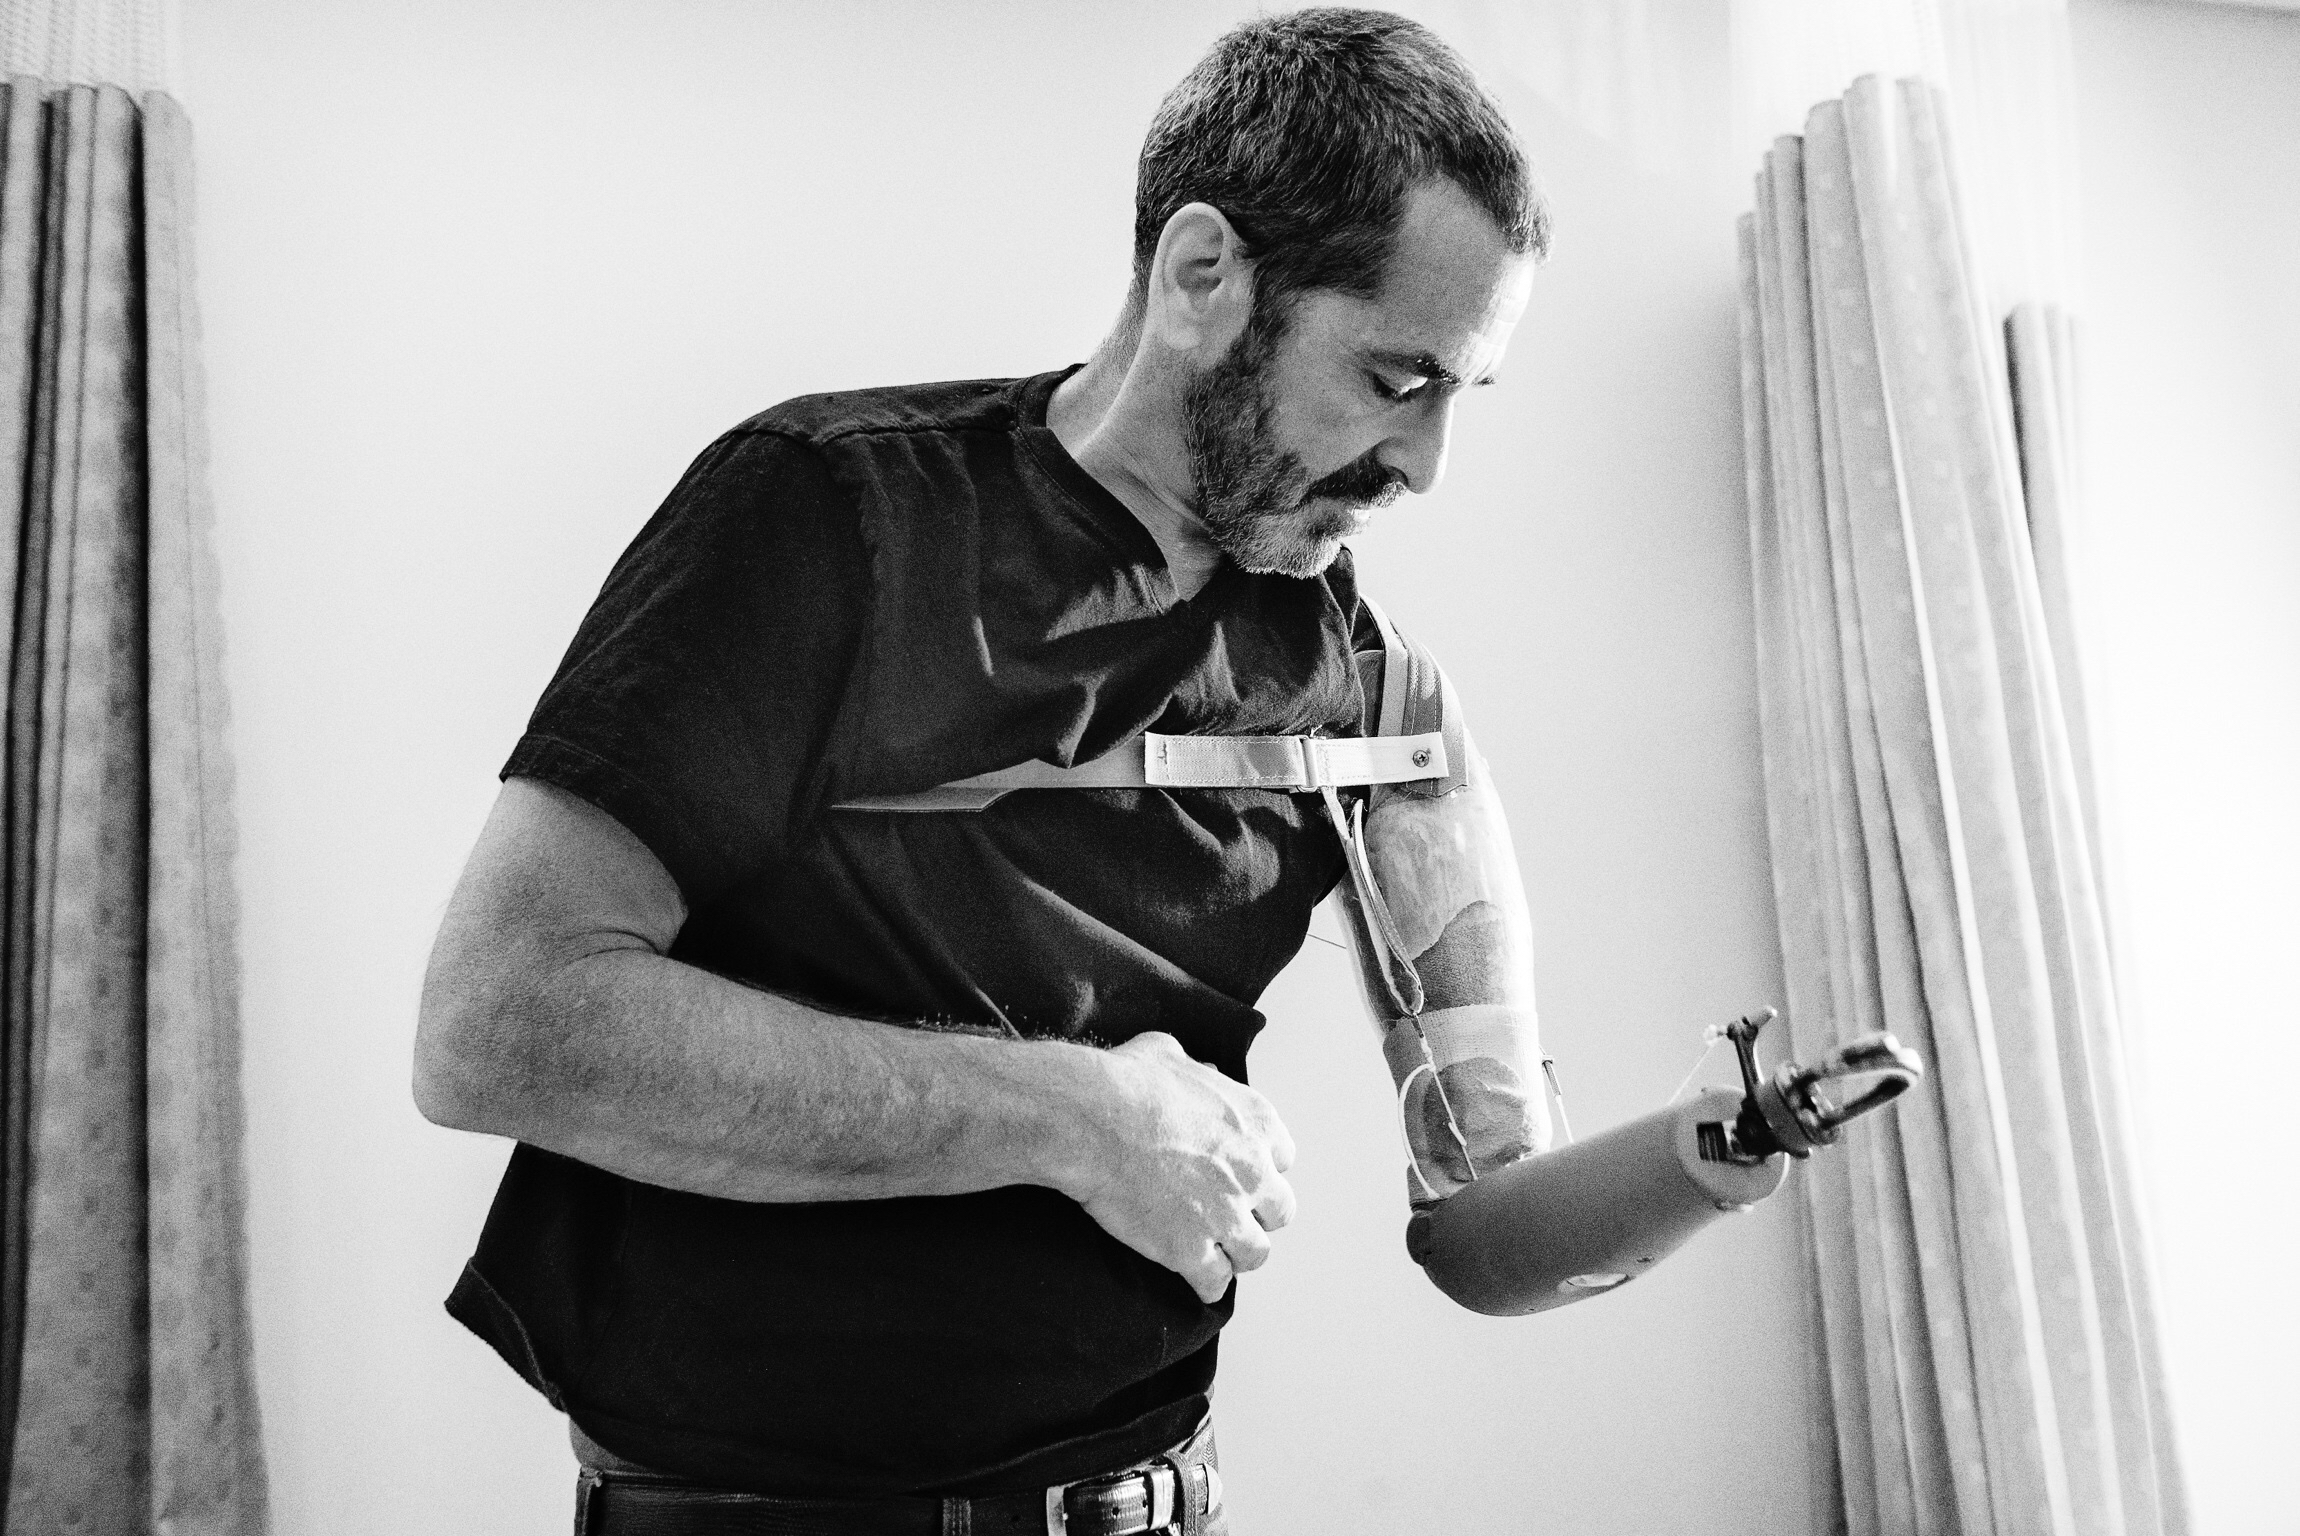 Miles operating his body powered prosthetic at the Medstar National Rehabilitation Hospital in Washington. The technology is not state-of-the-art, but the device is very rugged and reliable. Photo by Chris Anderson